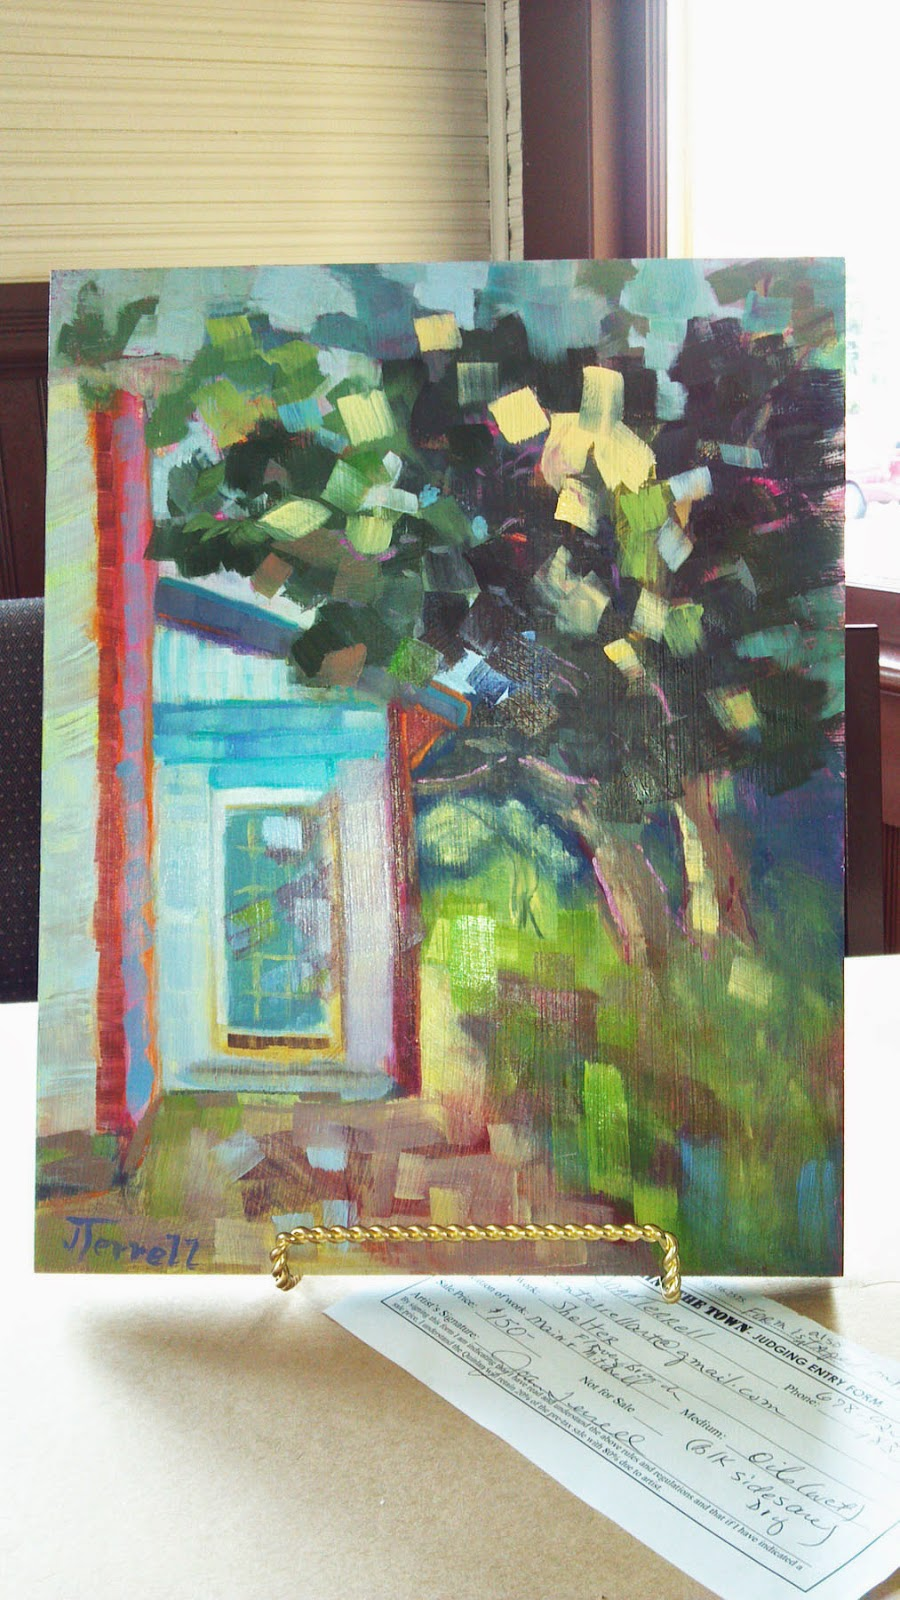 Shelter, a colorful original oil painting by Joan Terrell